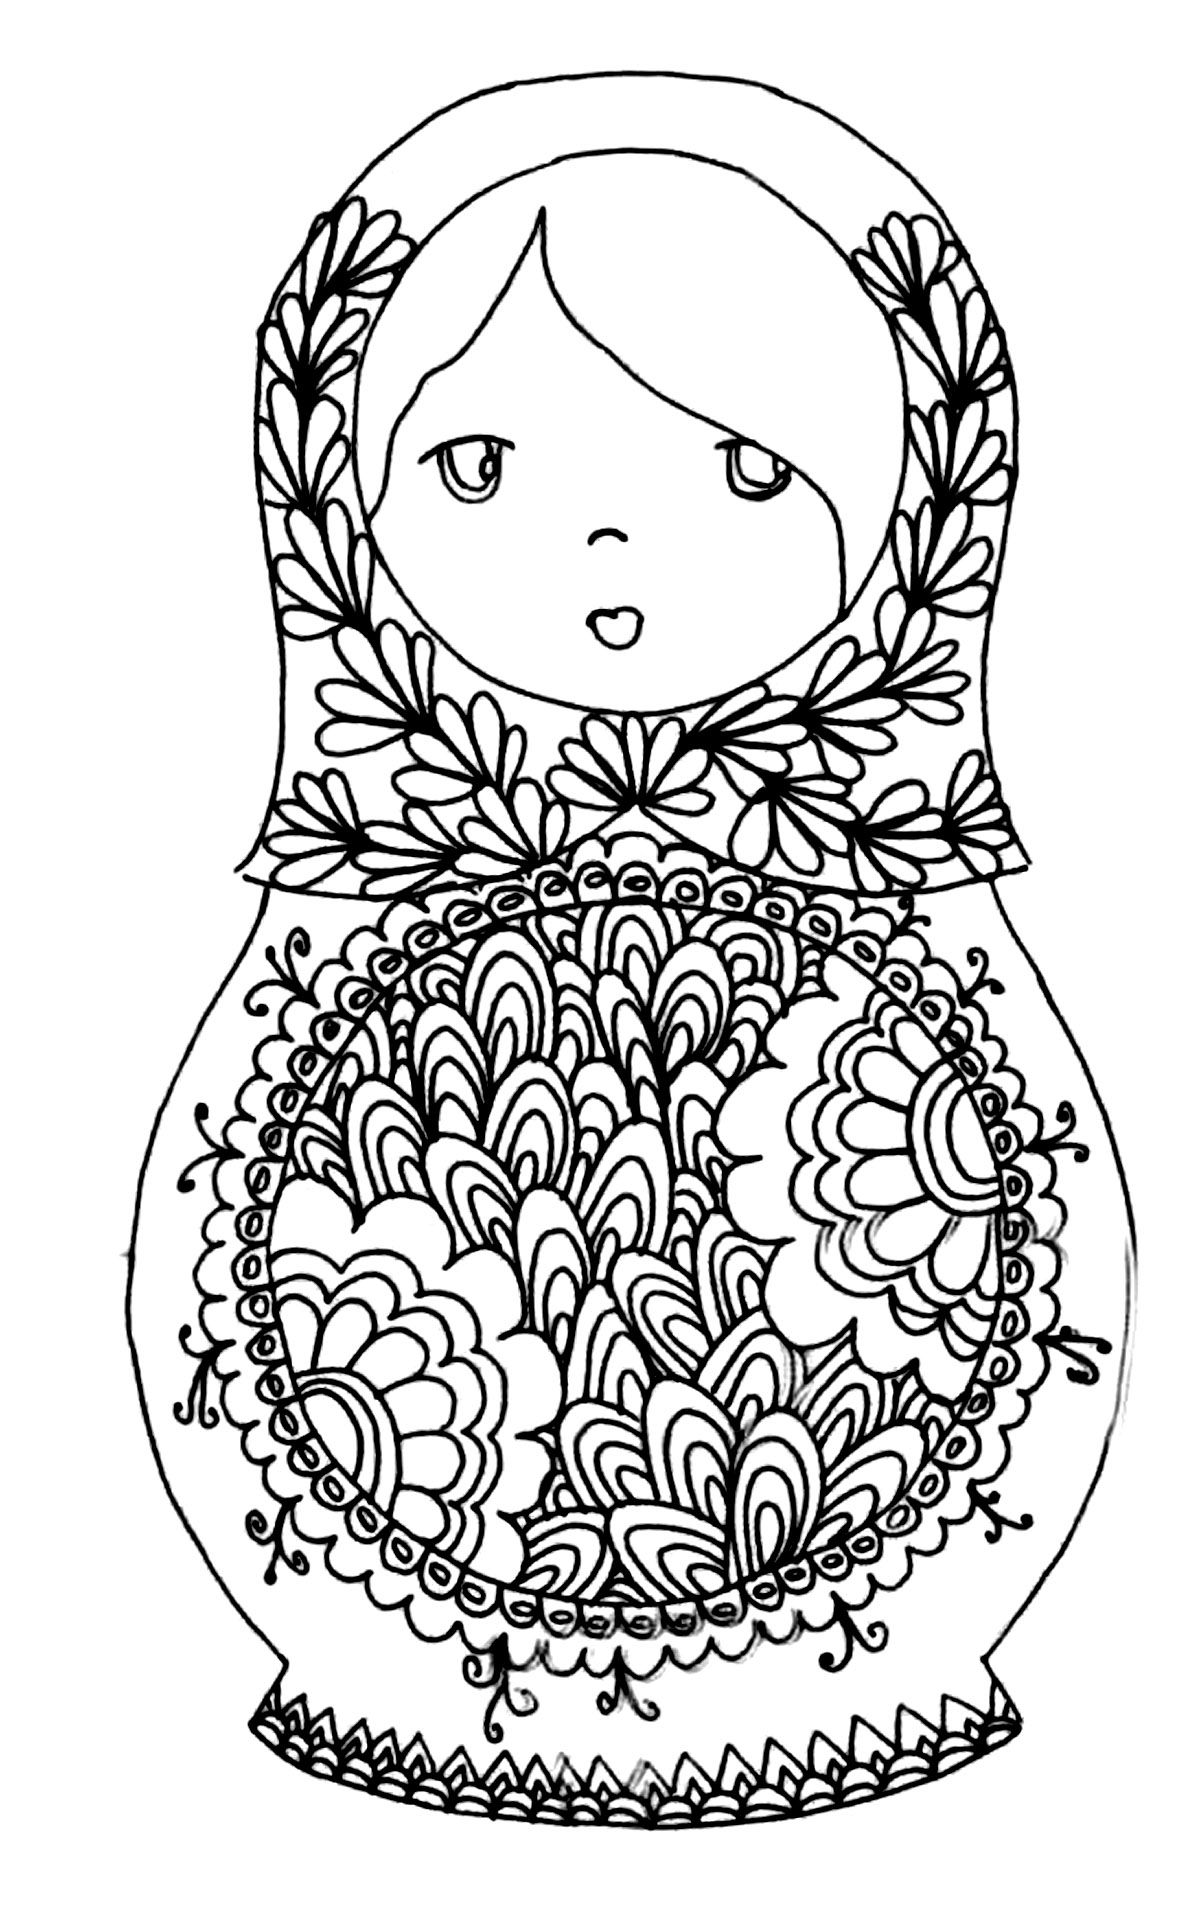 Russian dolls - Coloring Pages for adults